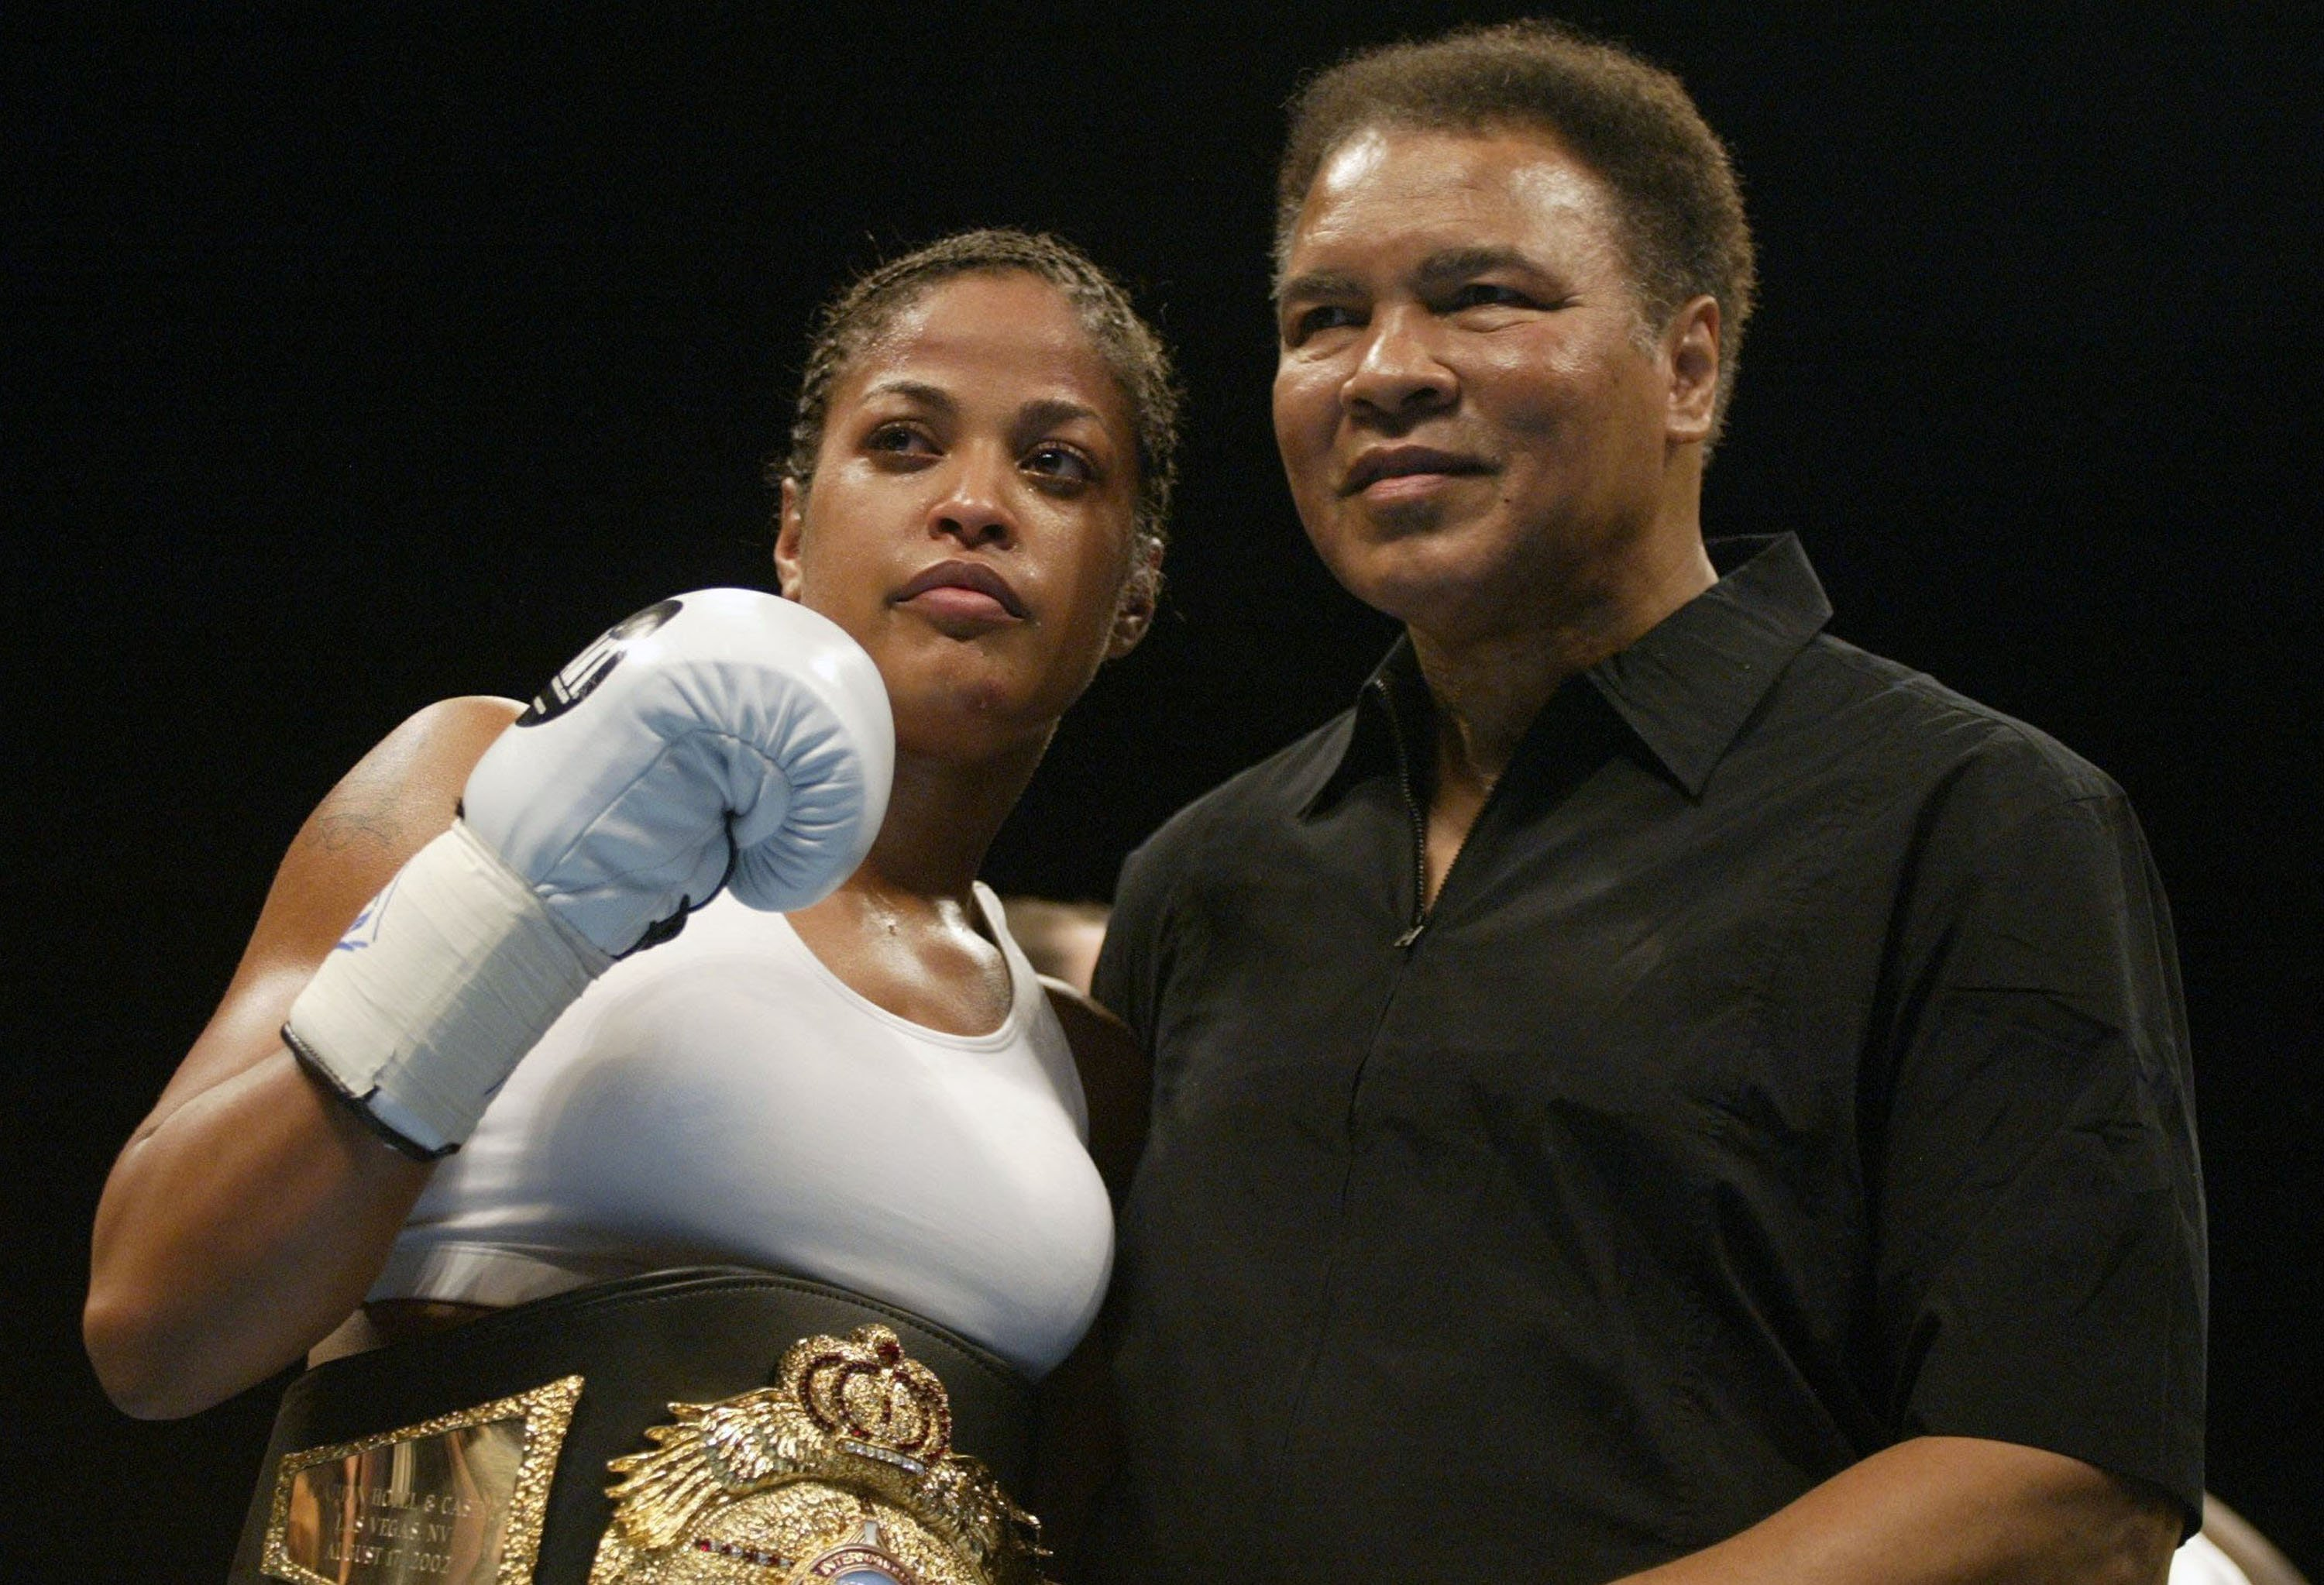 Laila Ali poses with her father, former boxer, Muhammad Ali, after defeating Suzy Taylor after two rounds at the Aladdin Casino on August 17, 2002 | Photo: GettyImages